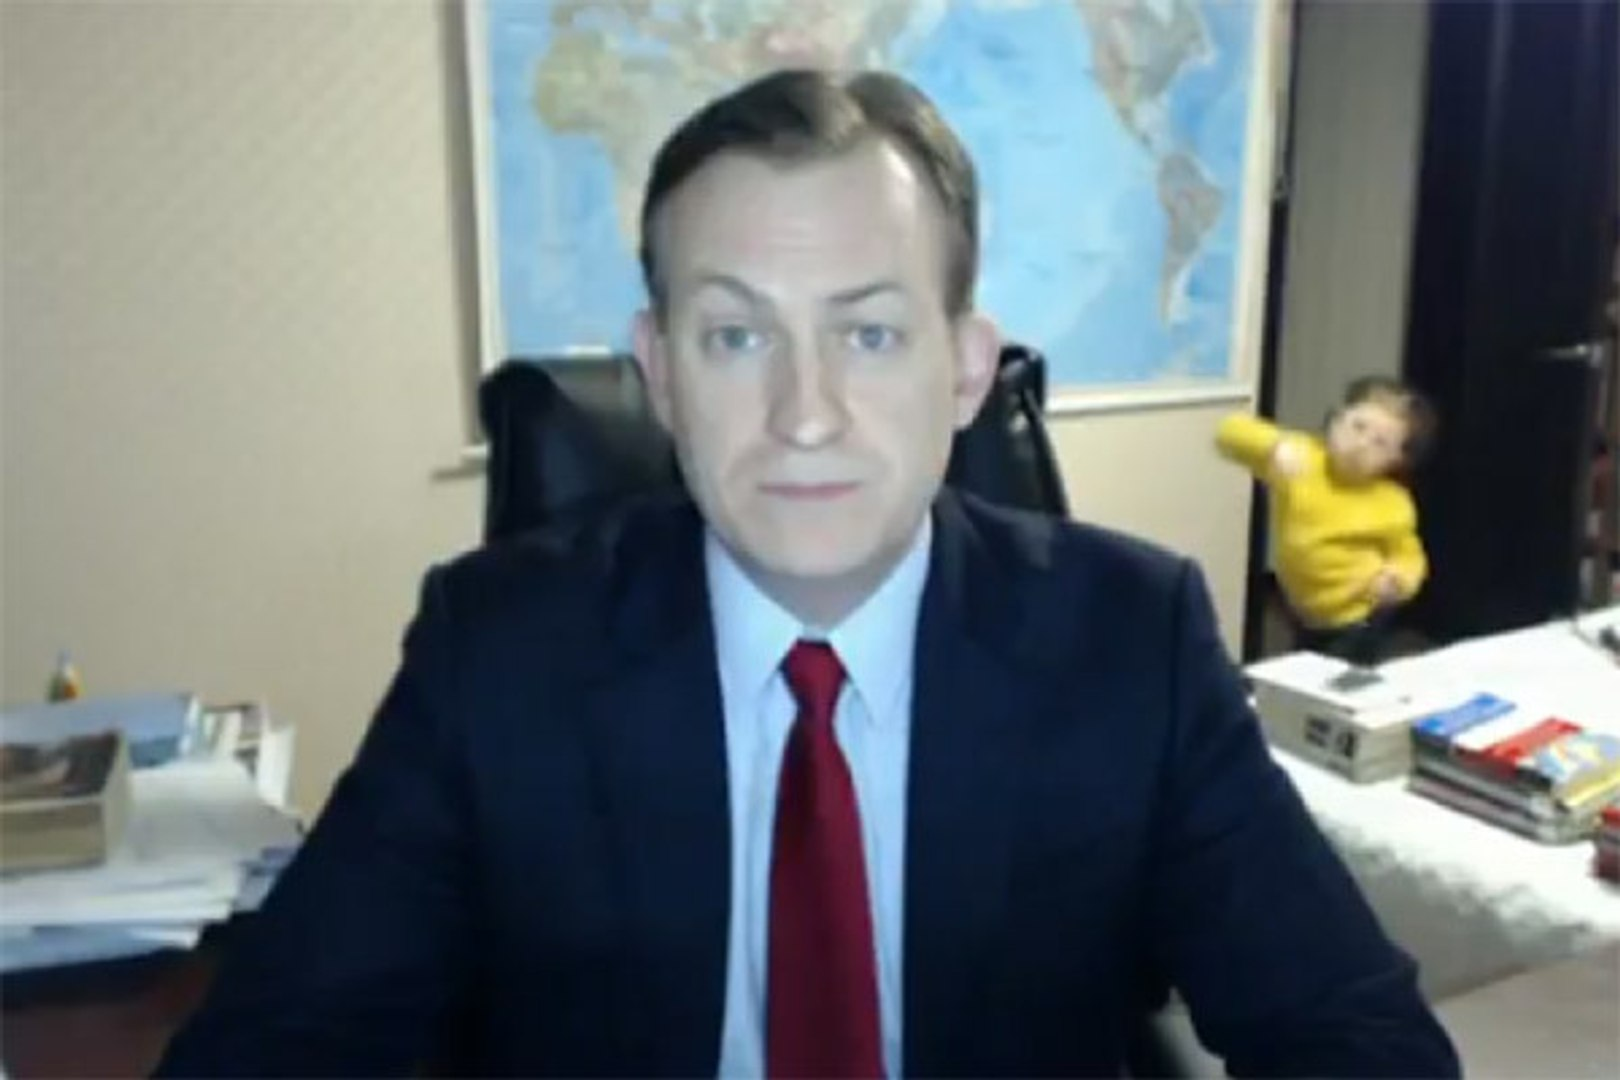 Funniest moment a BBC expert's live interview Gatecrashed by His Kids